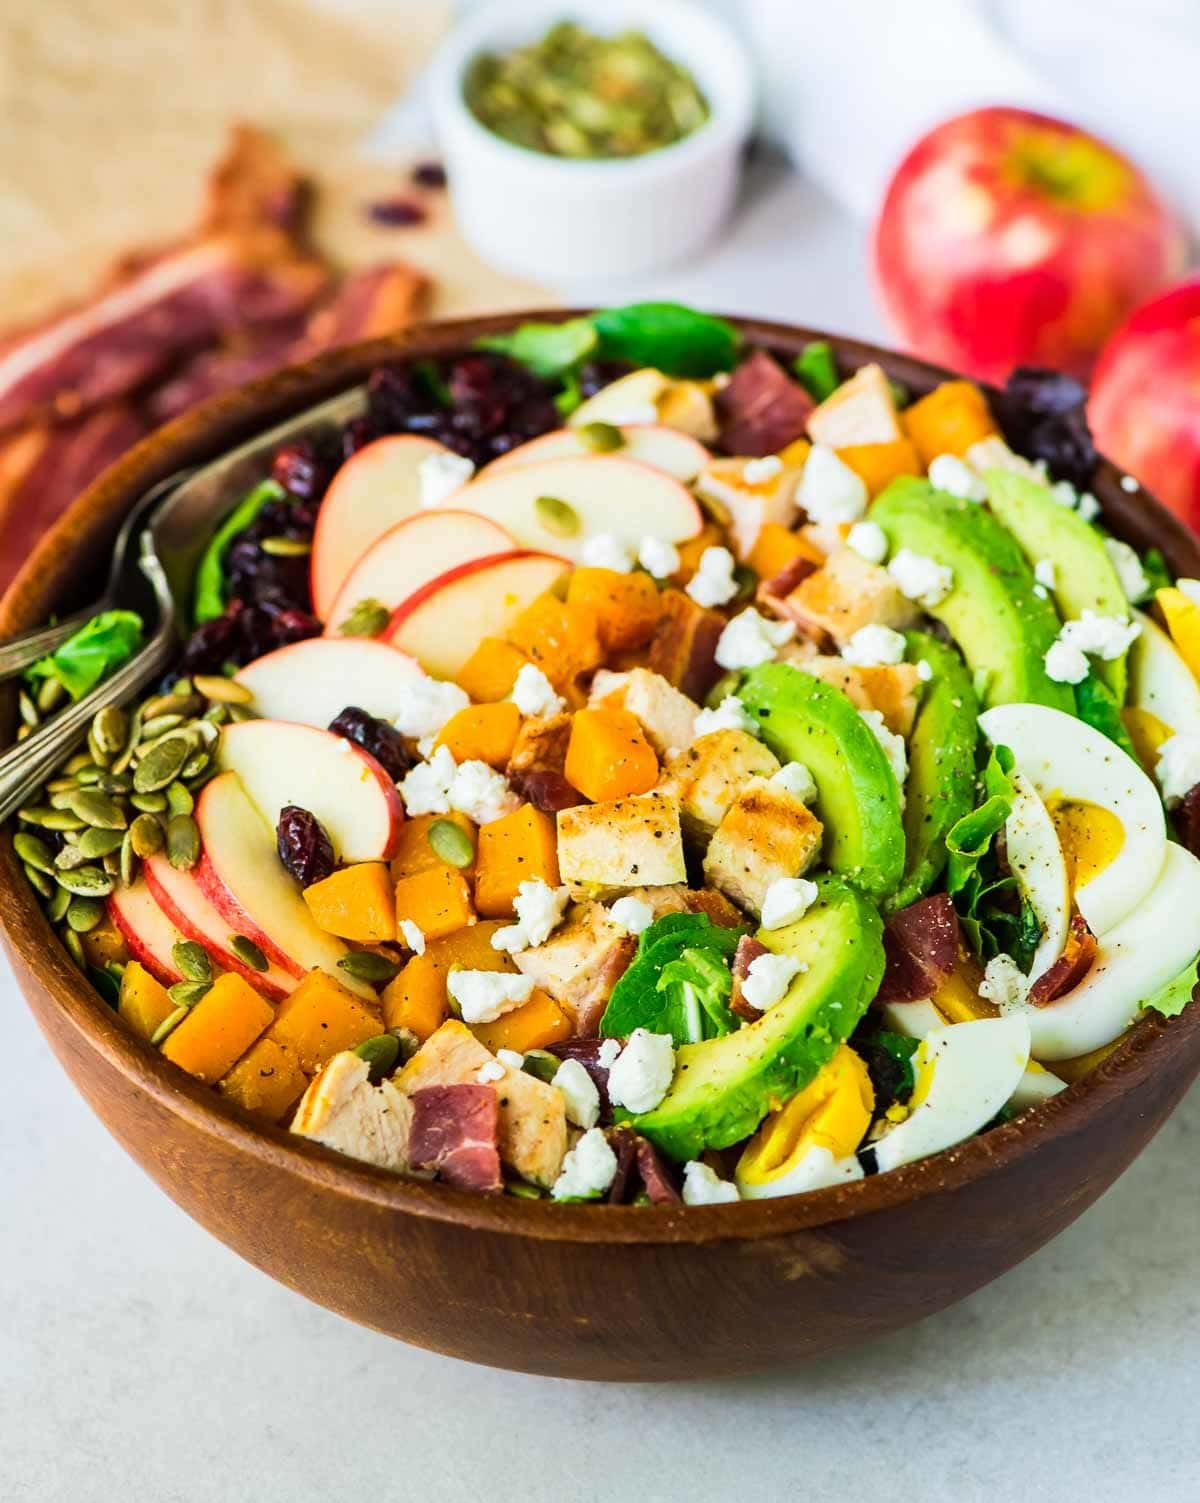 Harvest Cobb Salad with Butternut Squash, Chicken, Apples, Cranberries, and Goat Cheese. Healthy recipe that's perfect for a main dish salad. Easy to make ahead for a Thanksgiving side dish, or any holiday gathering. Recipe at wellplated.com | @wellplated